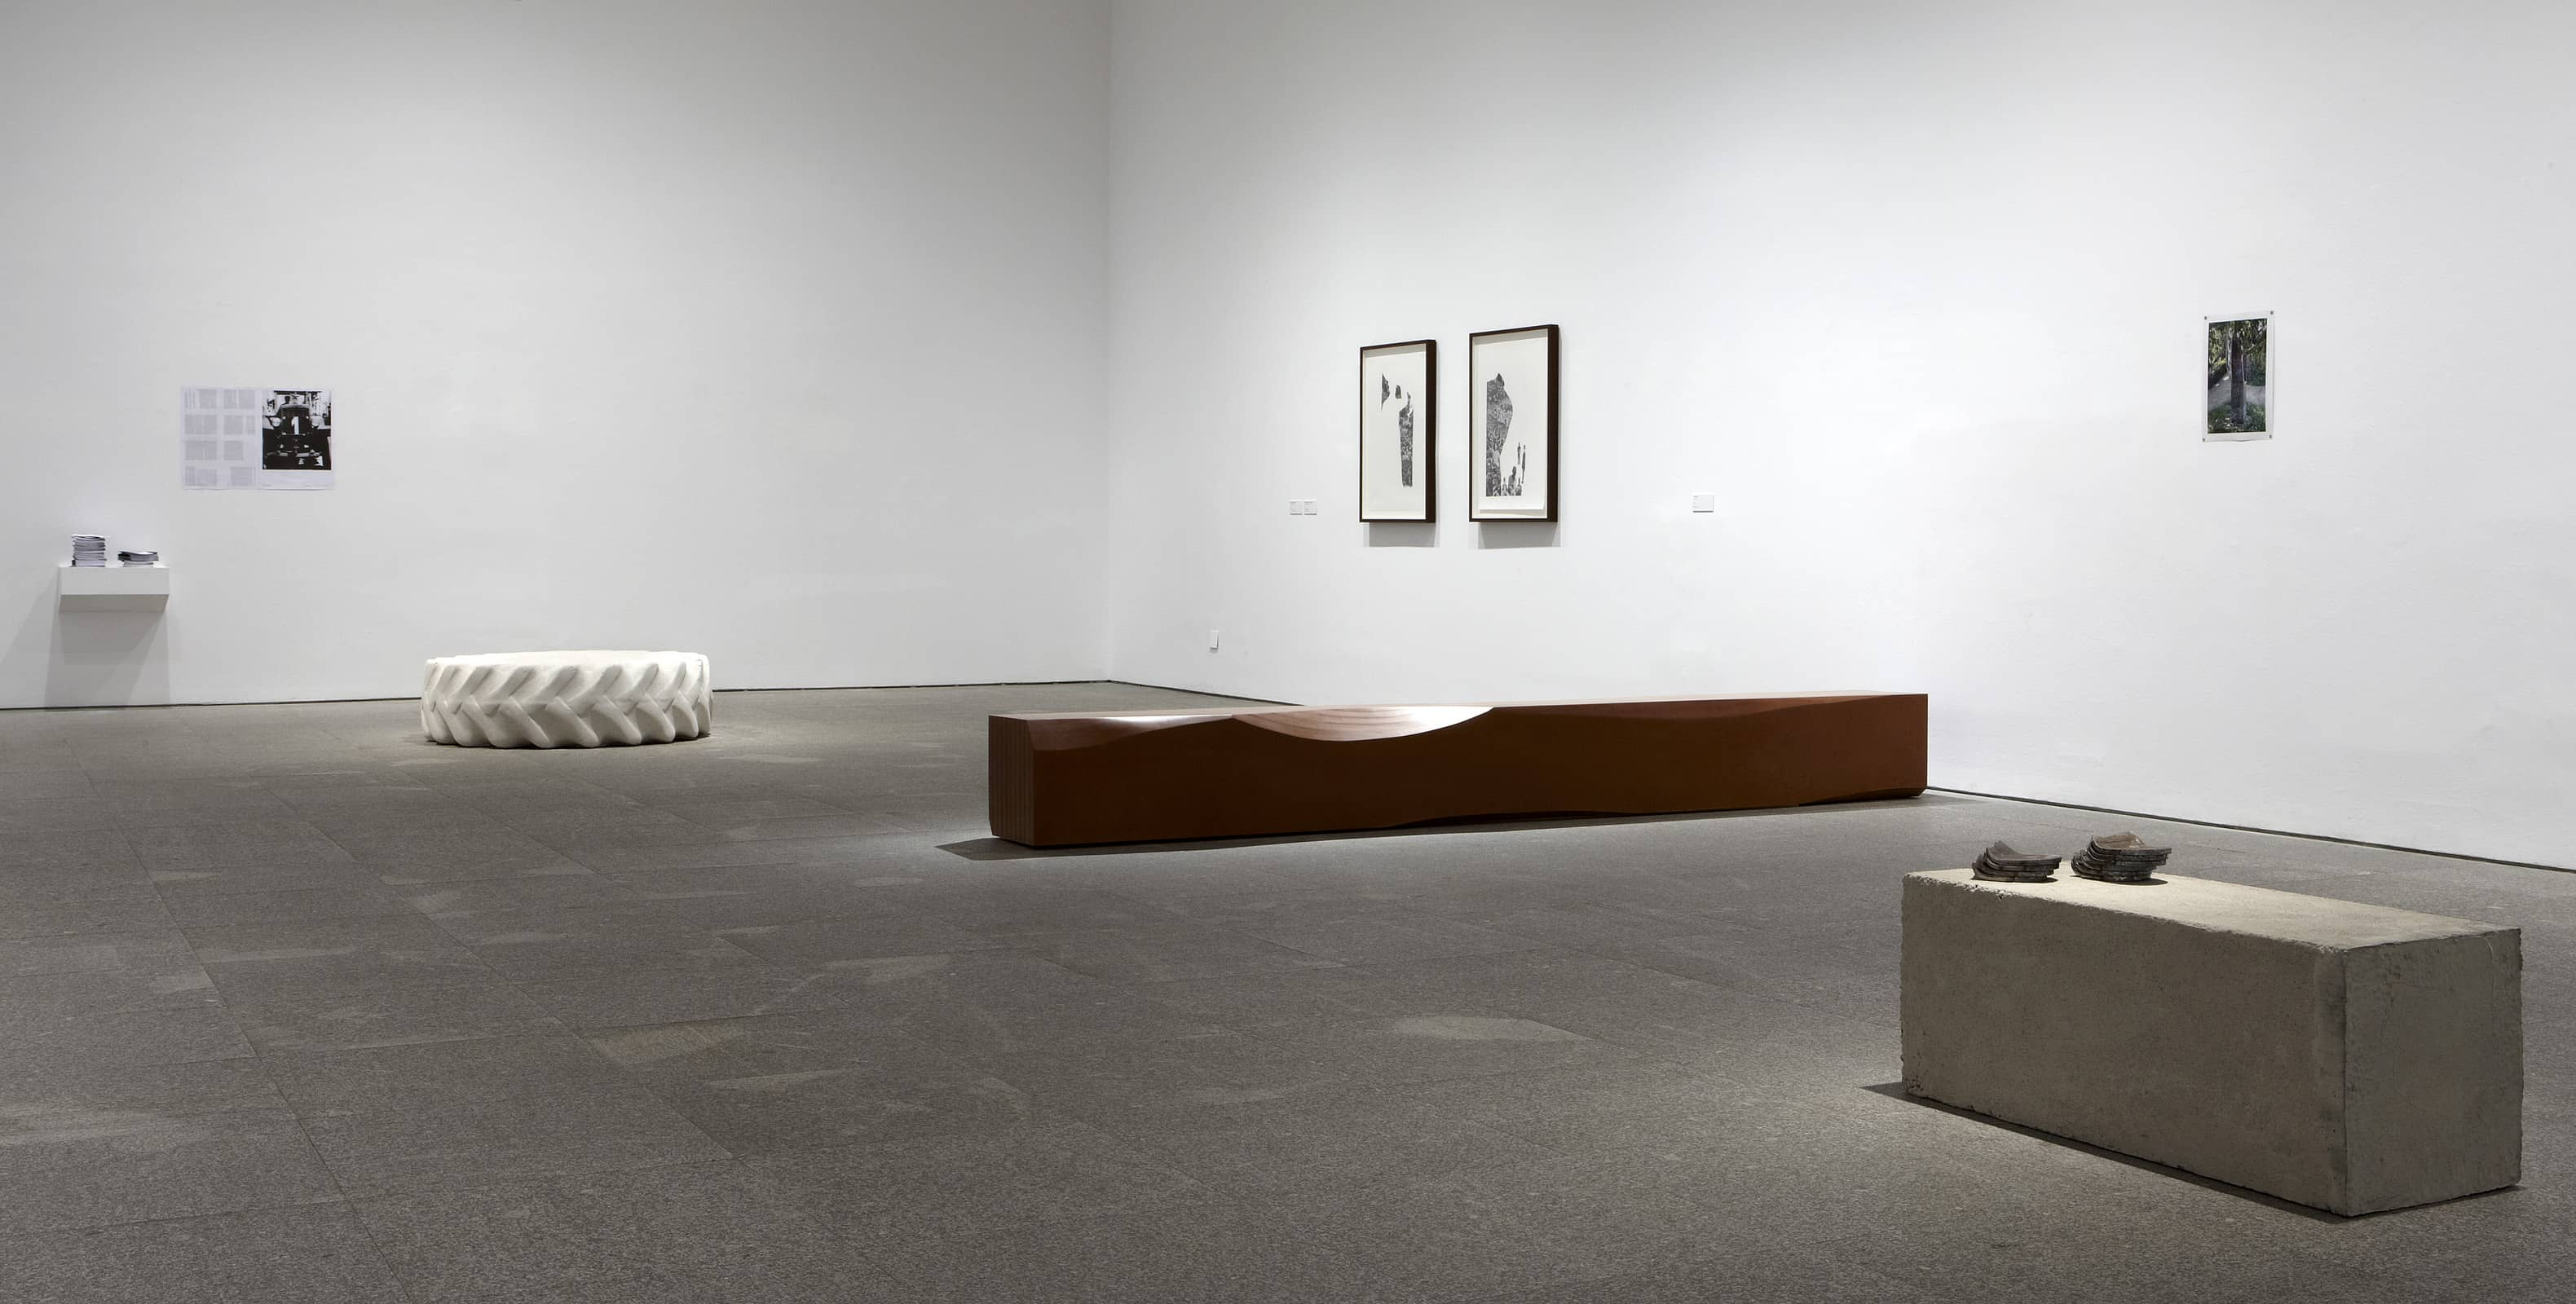 Installation view: Asier Mendizabal, MNCARS, Madrid, 2011 |  | ProjecteSD